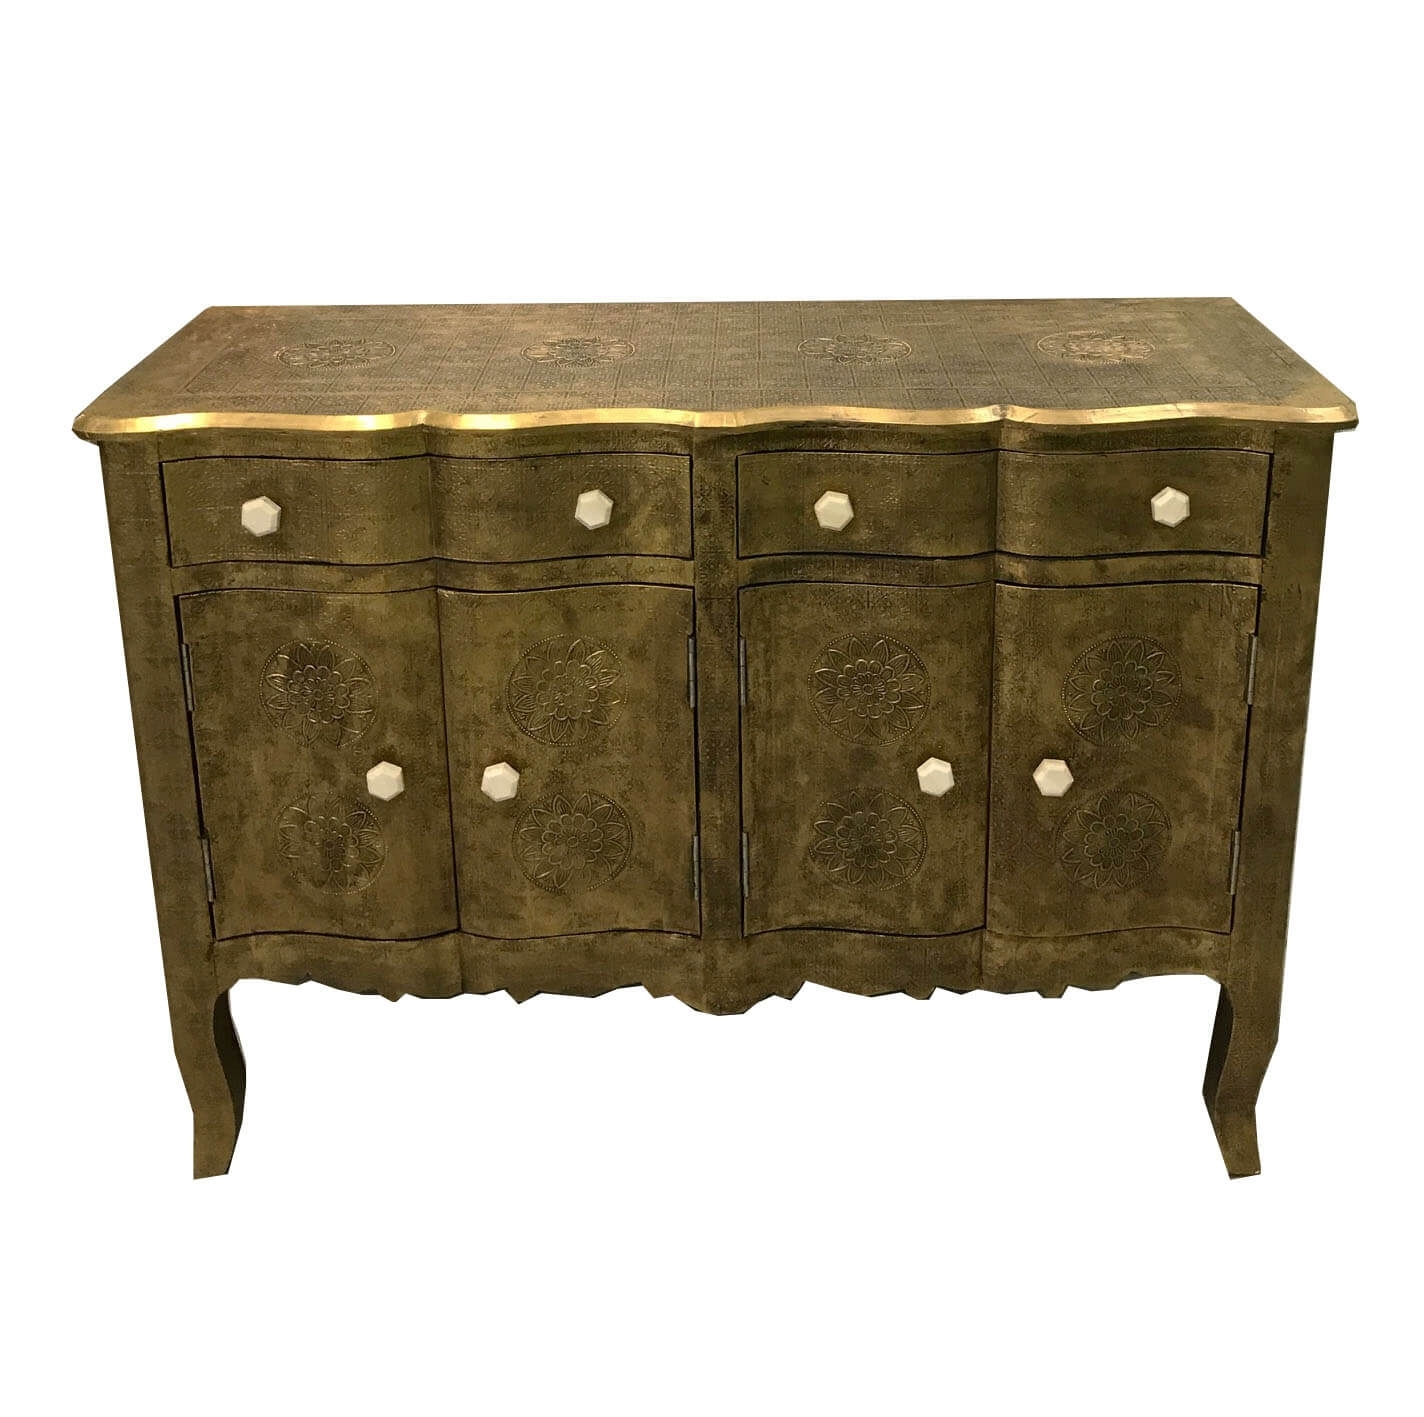 Antique Brass Embossed Wave Fronted Sideboard | Iris Furnishing Throughout Recent Open Shelf Brass 4 Drawer Sideboards (View 12 of 20)